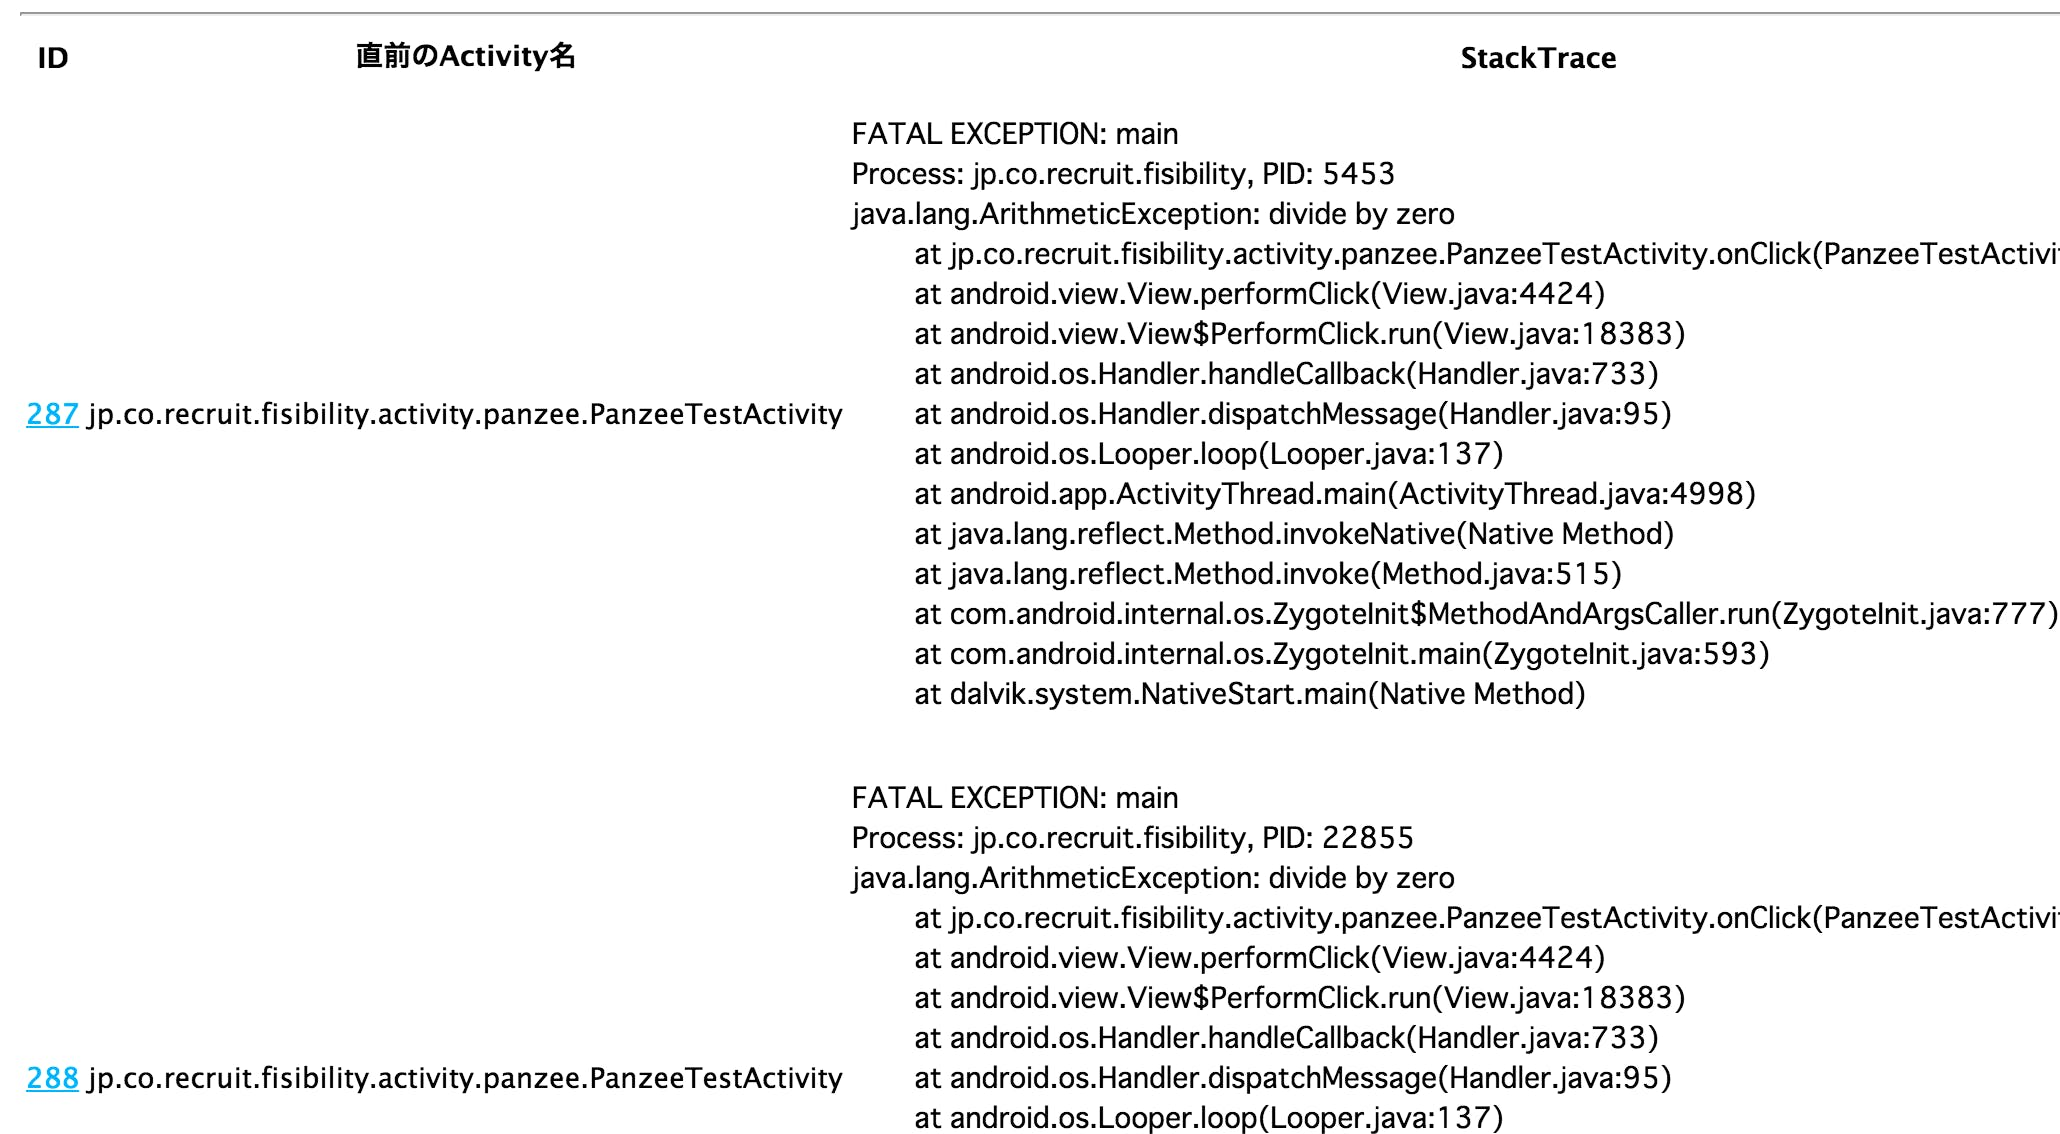 stacktrace1.png